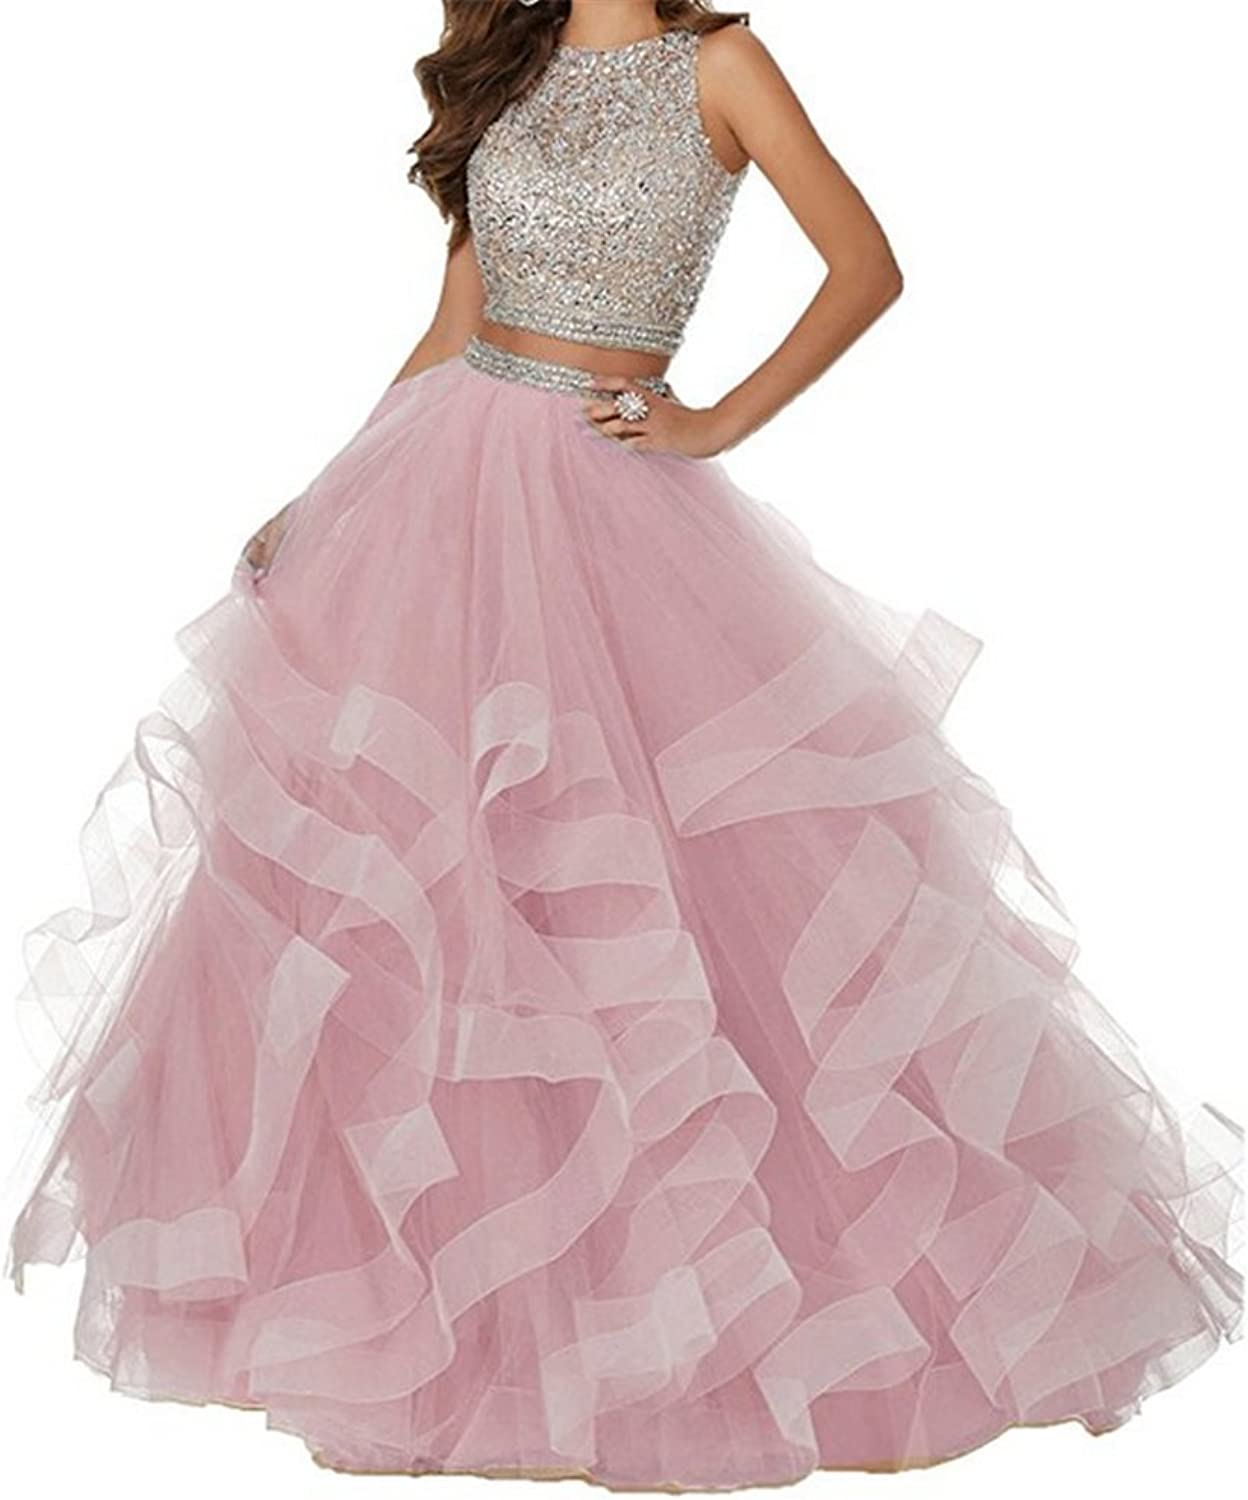 Kailiya Multilayer Asymmetric Tulle Beaded Two Pieces Long Prom Dress